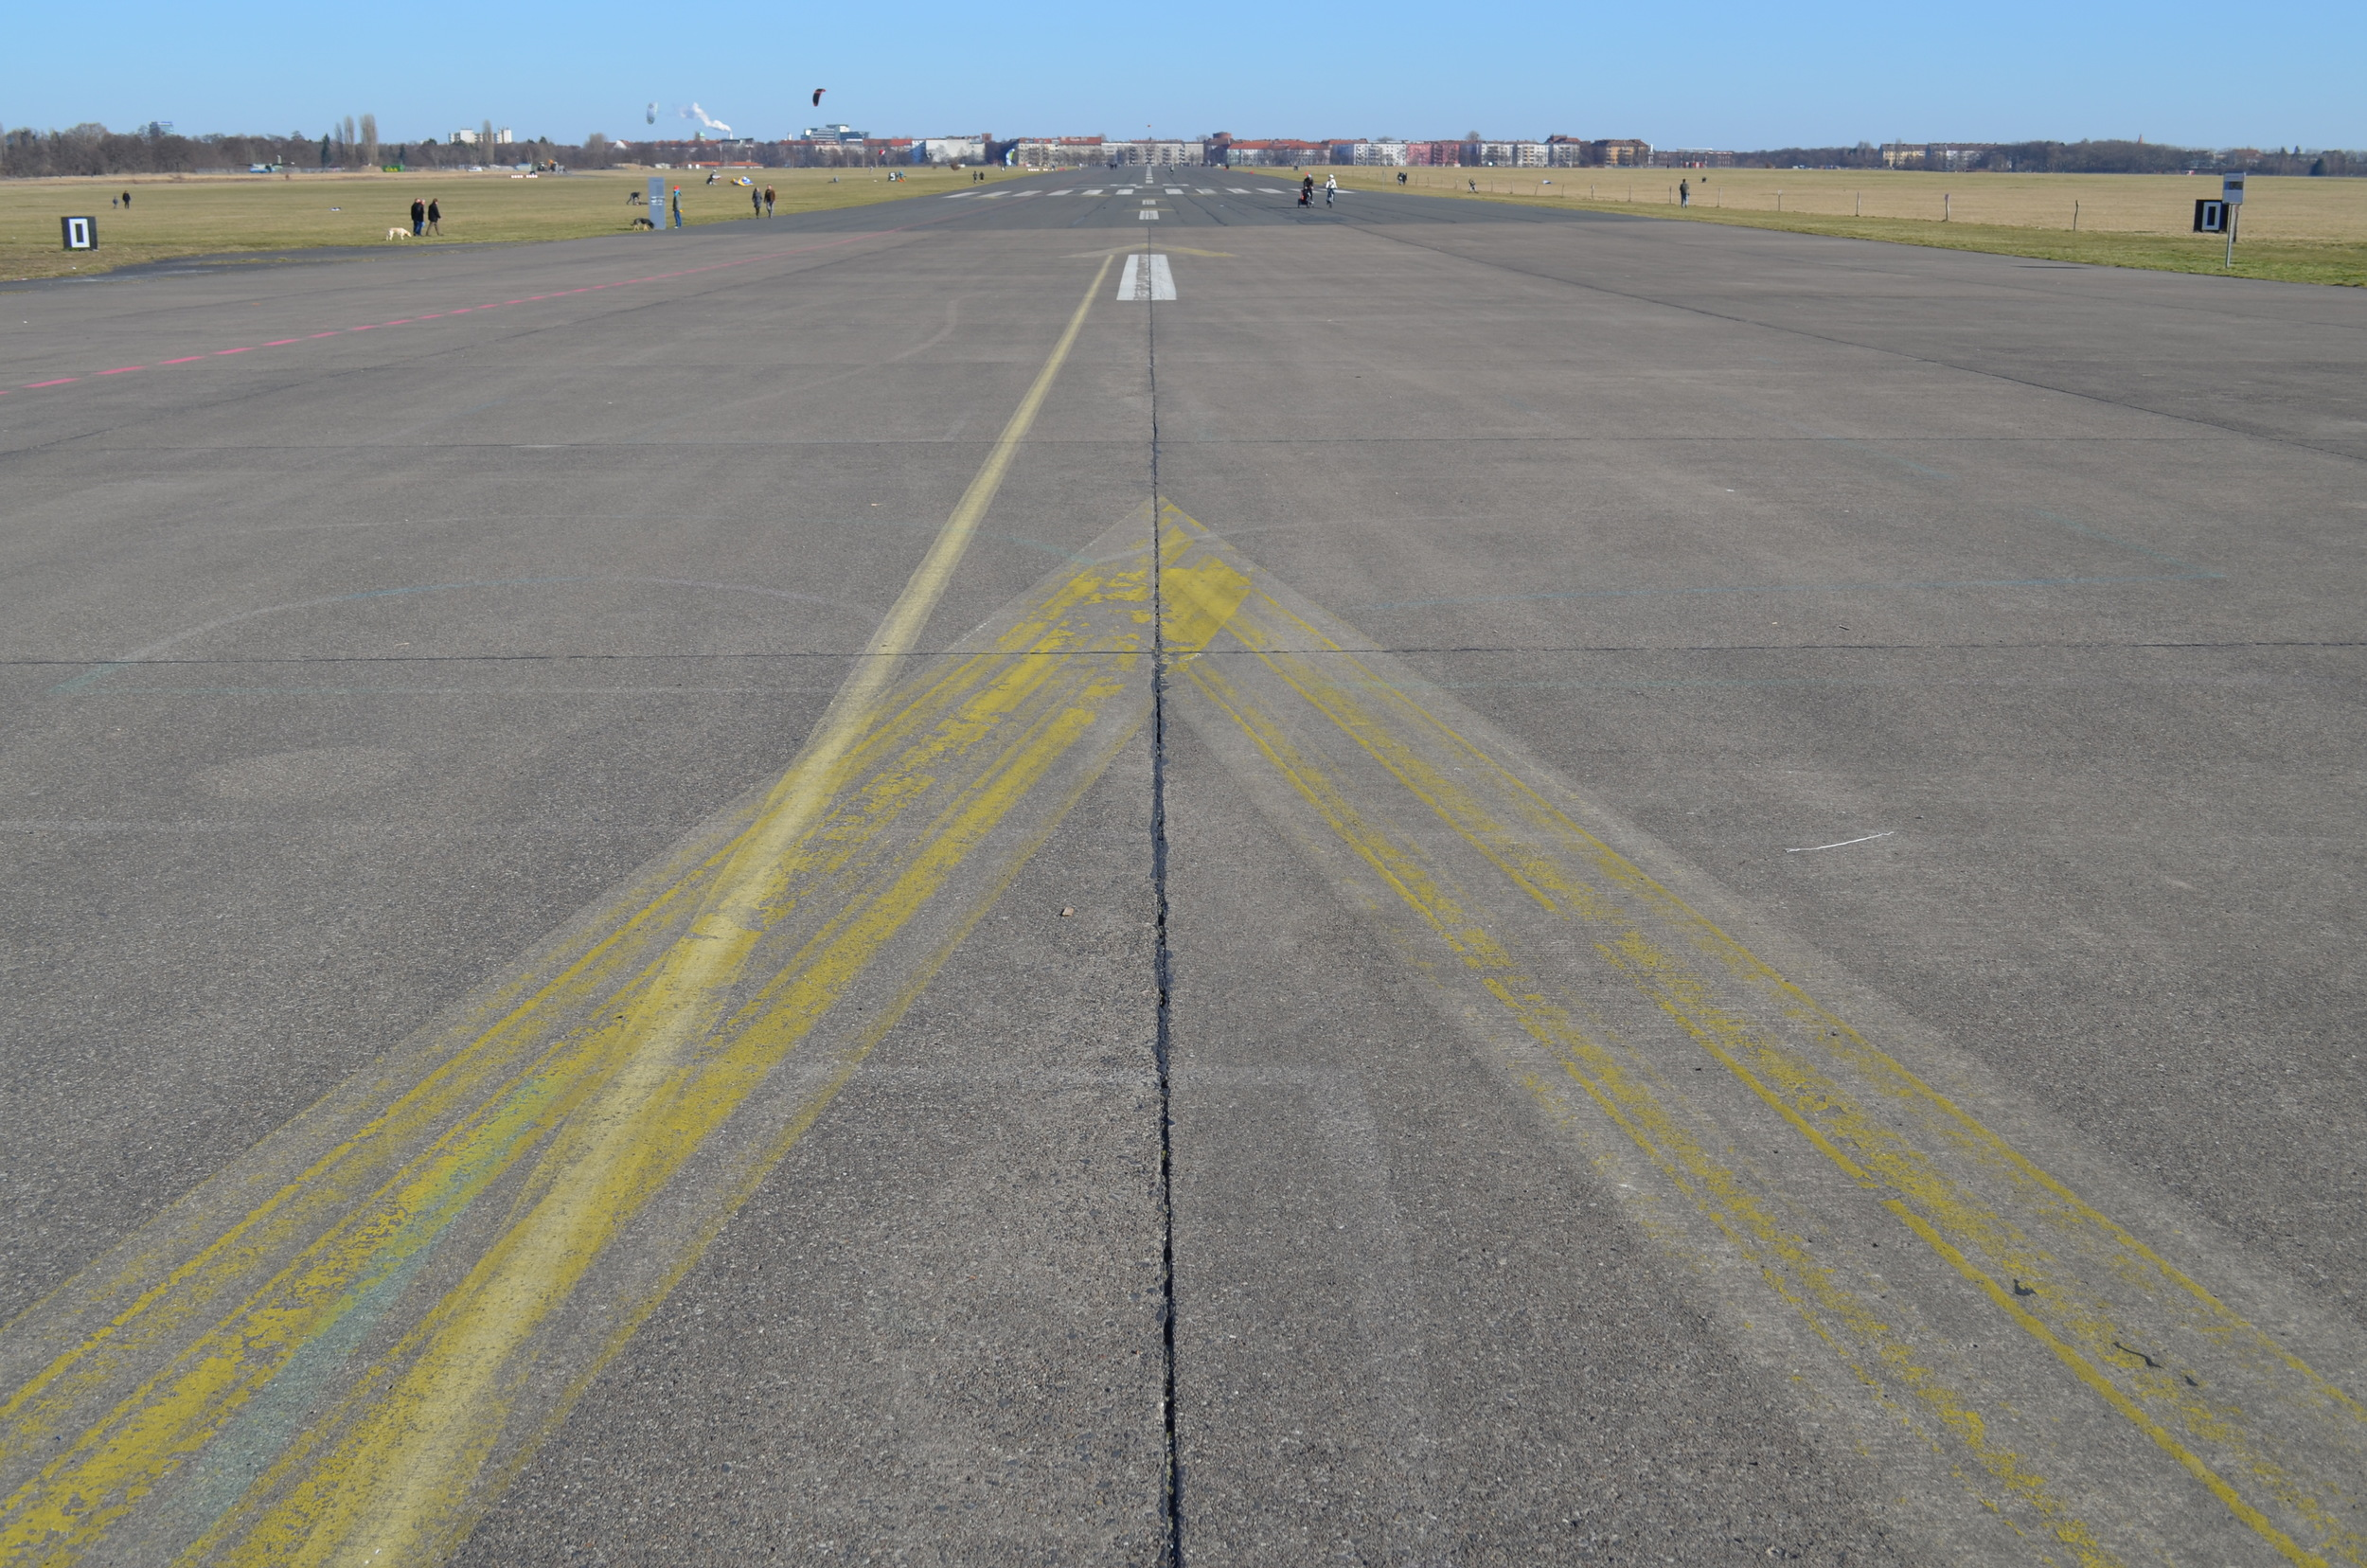 One of the runways at Tempelhofer Feld. When it was constructed, it was considered one of the most beautiful airports in the world.